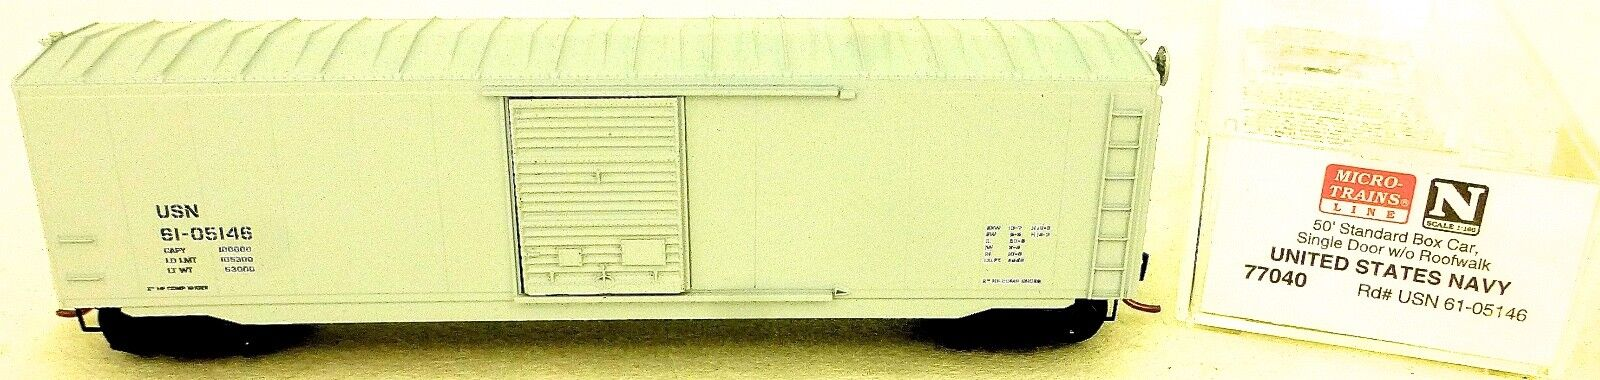 Micro Trains Line 77040 United States States States Navy 61-05146 50 ´ Box Car 1 160 Conf. 926197